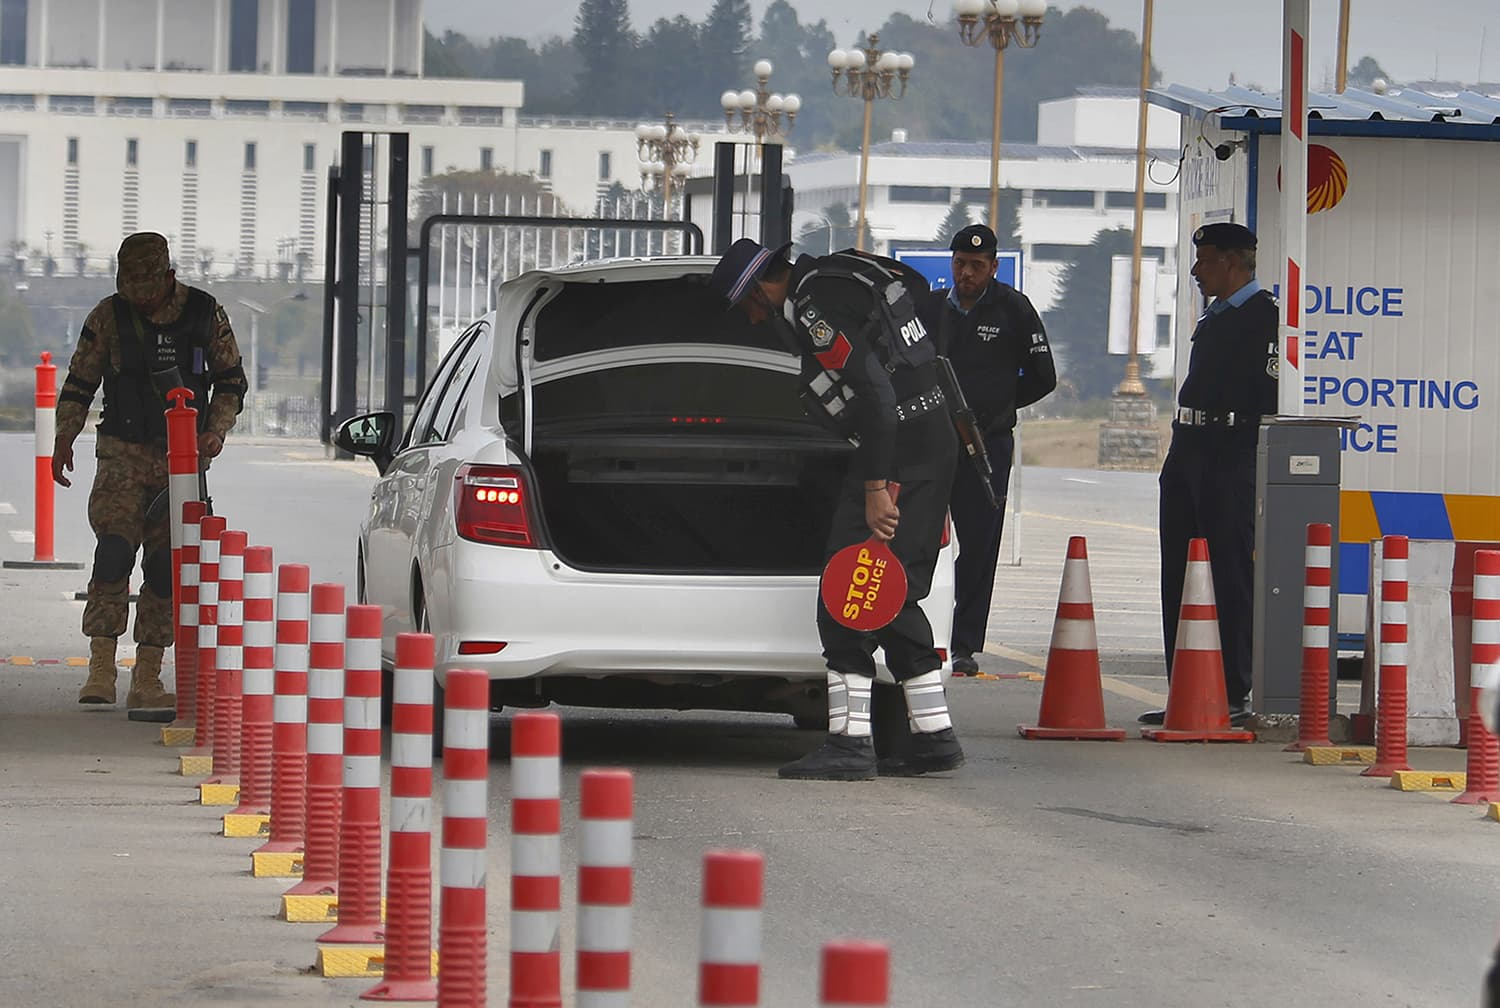 An army soldier stands guard while police officers search a vehicle at a checkpoint near presidency to ensure security ahead of MBS's visit to Pakistan, in Islamabad on February 17. — AP